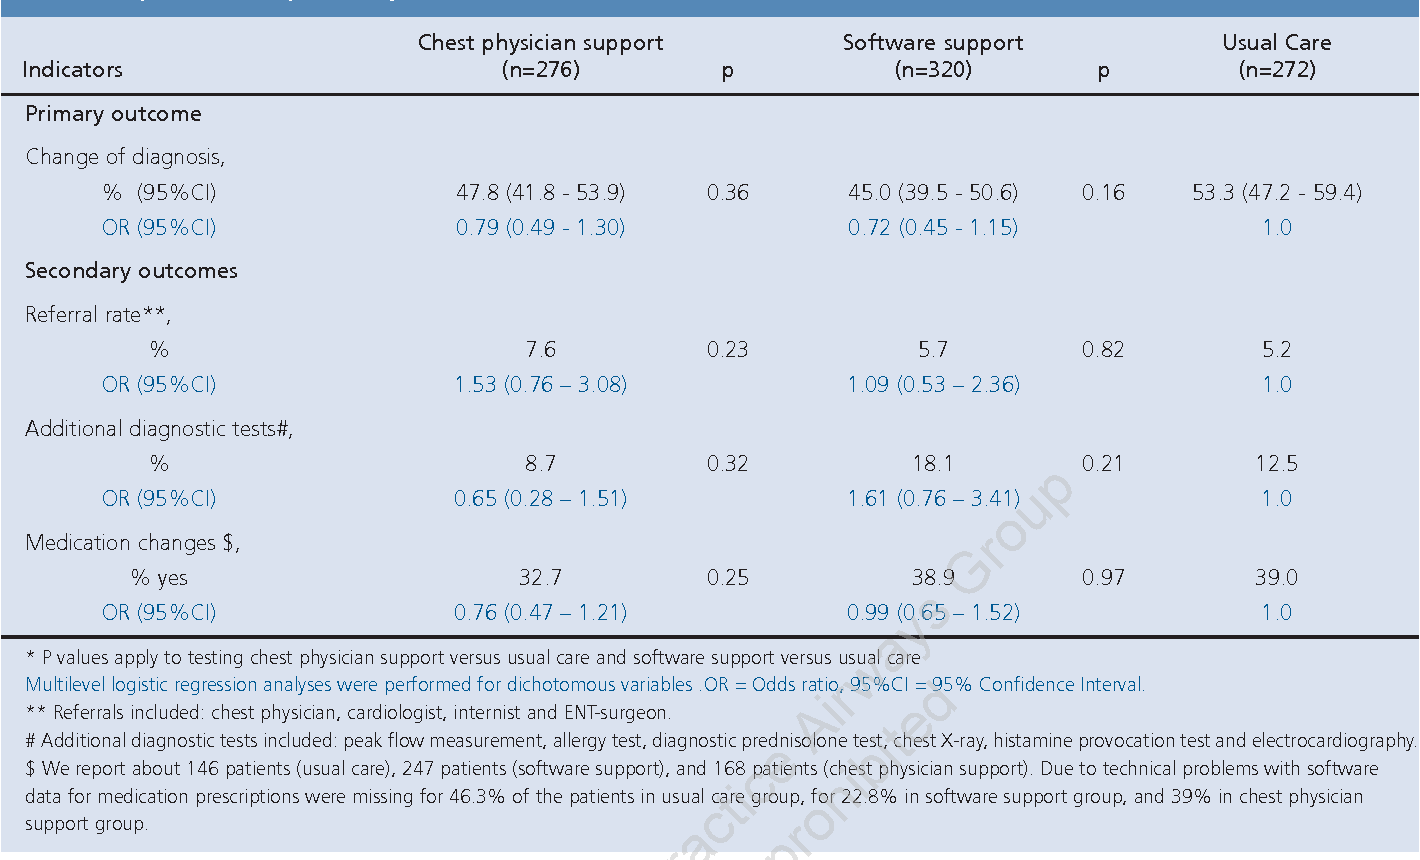 Table 3. Impact of the spirometry interventions on outcomes.*